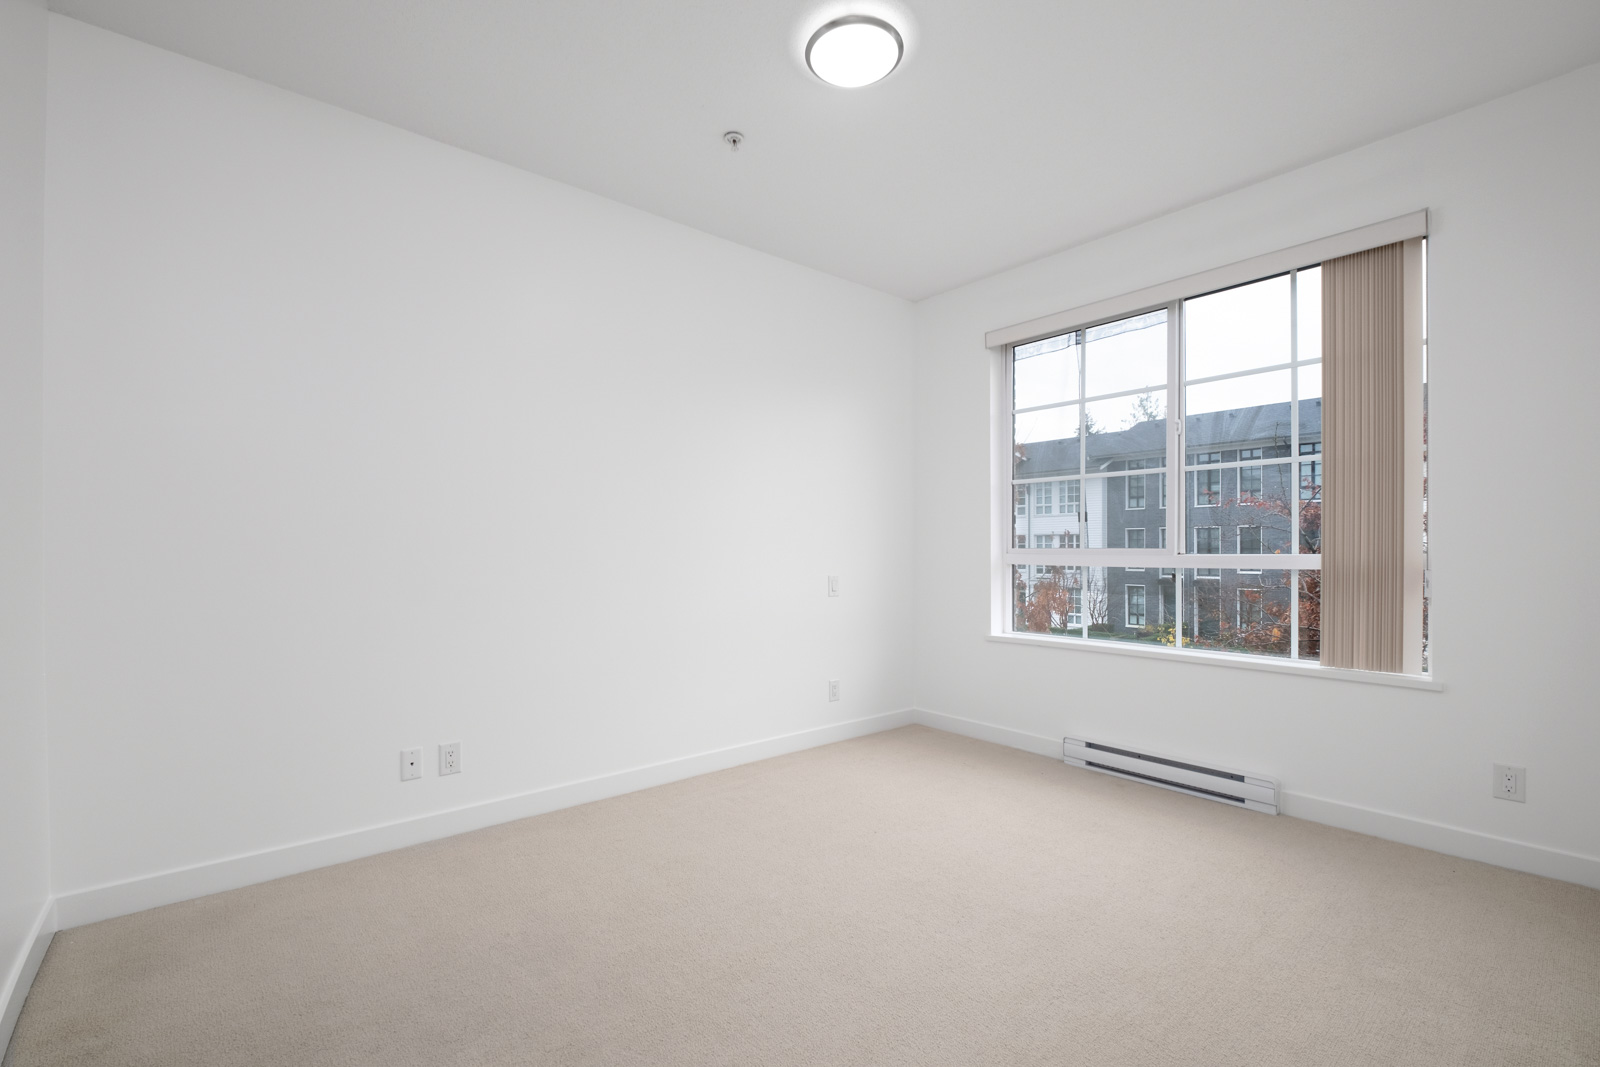 bedroom with white walls and window in rental condo in the Lougheed Town Centre neighbourhood of Coquitlam